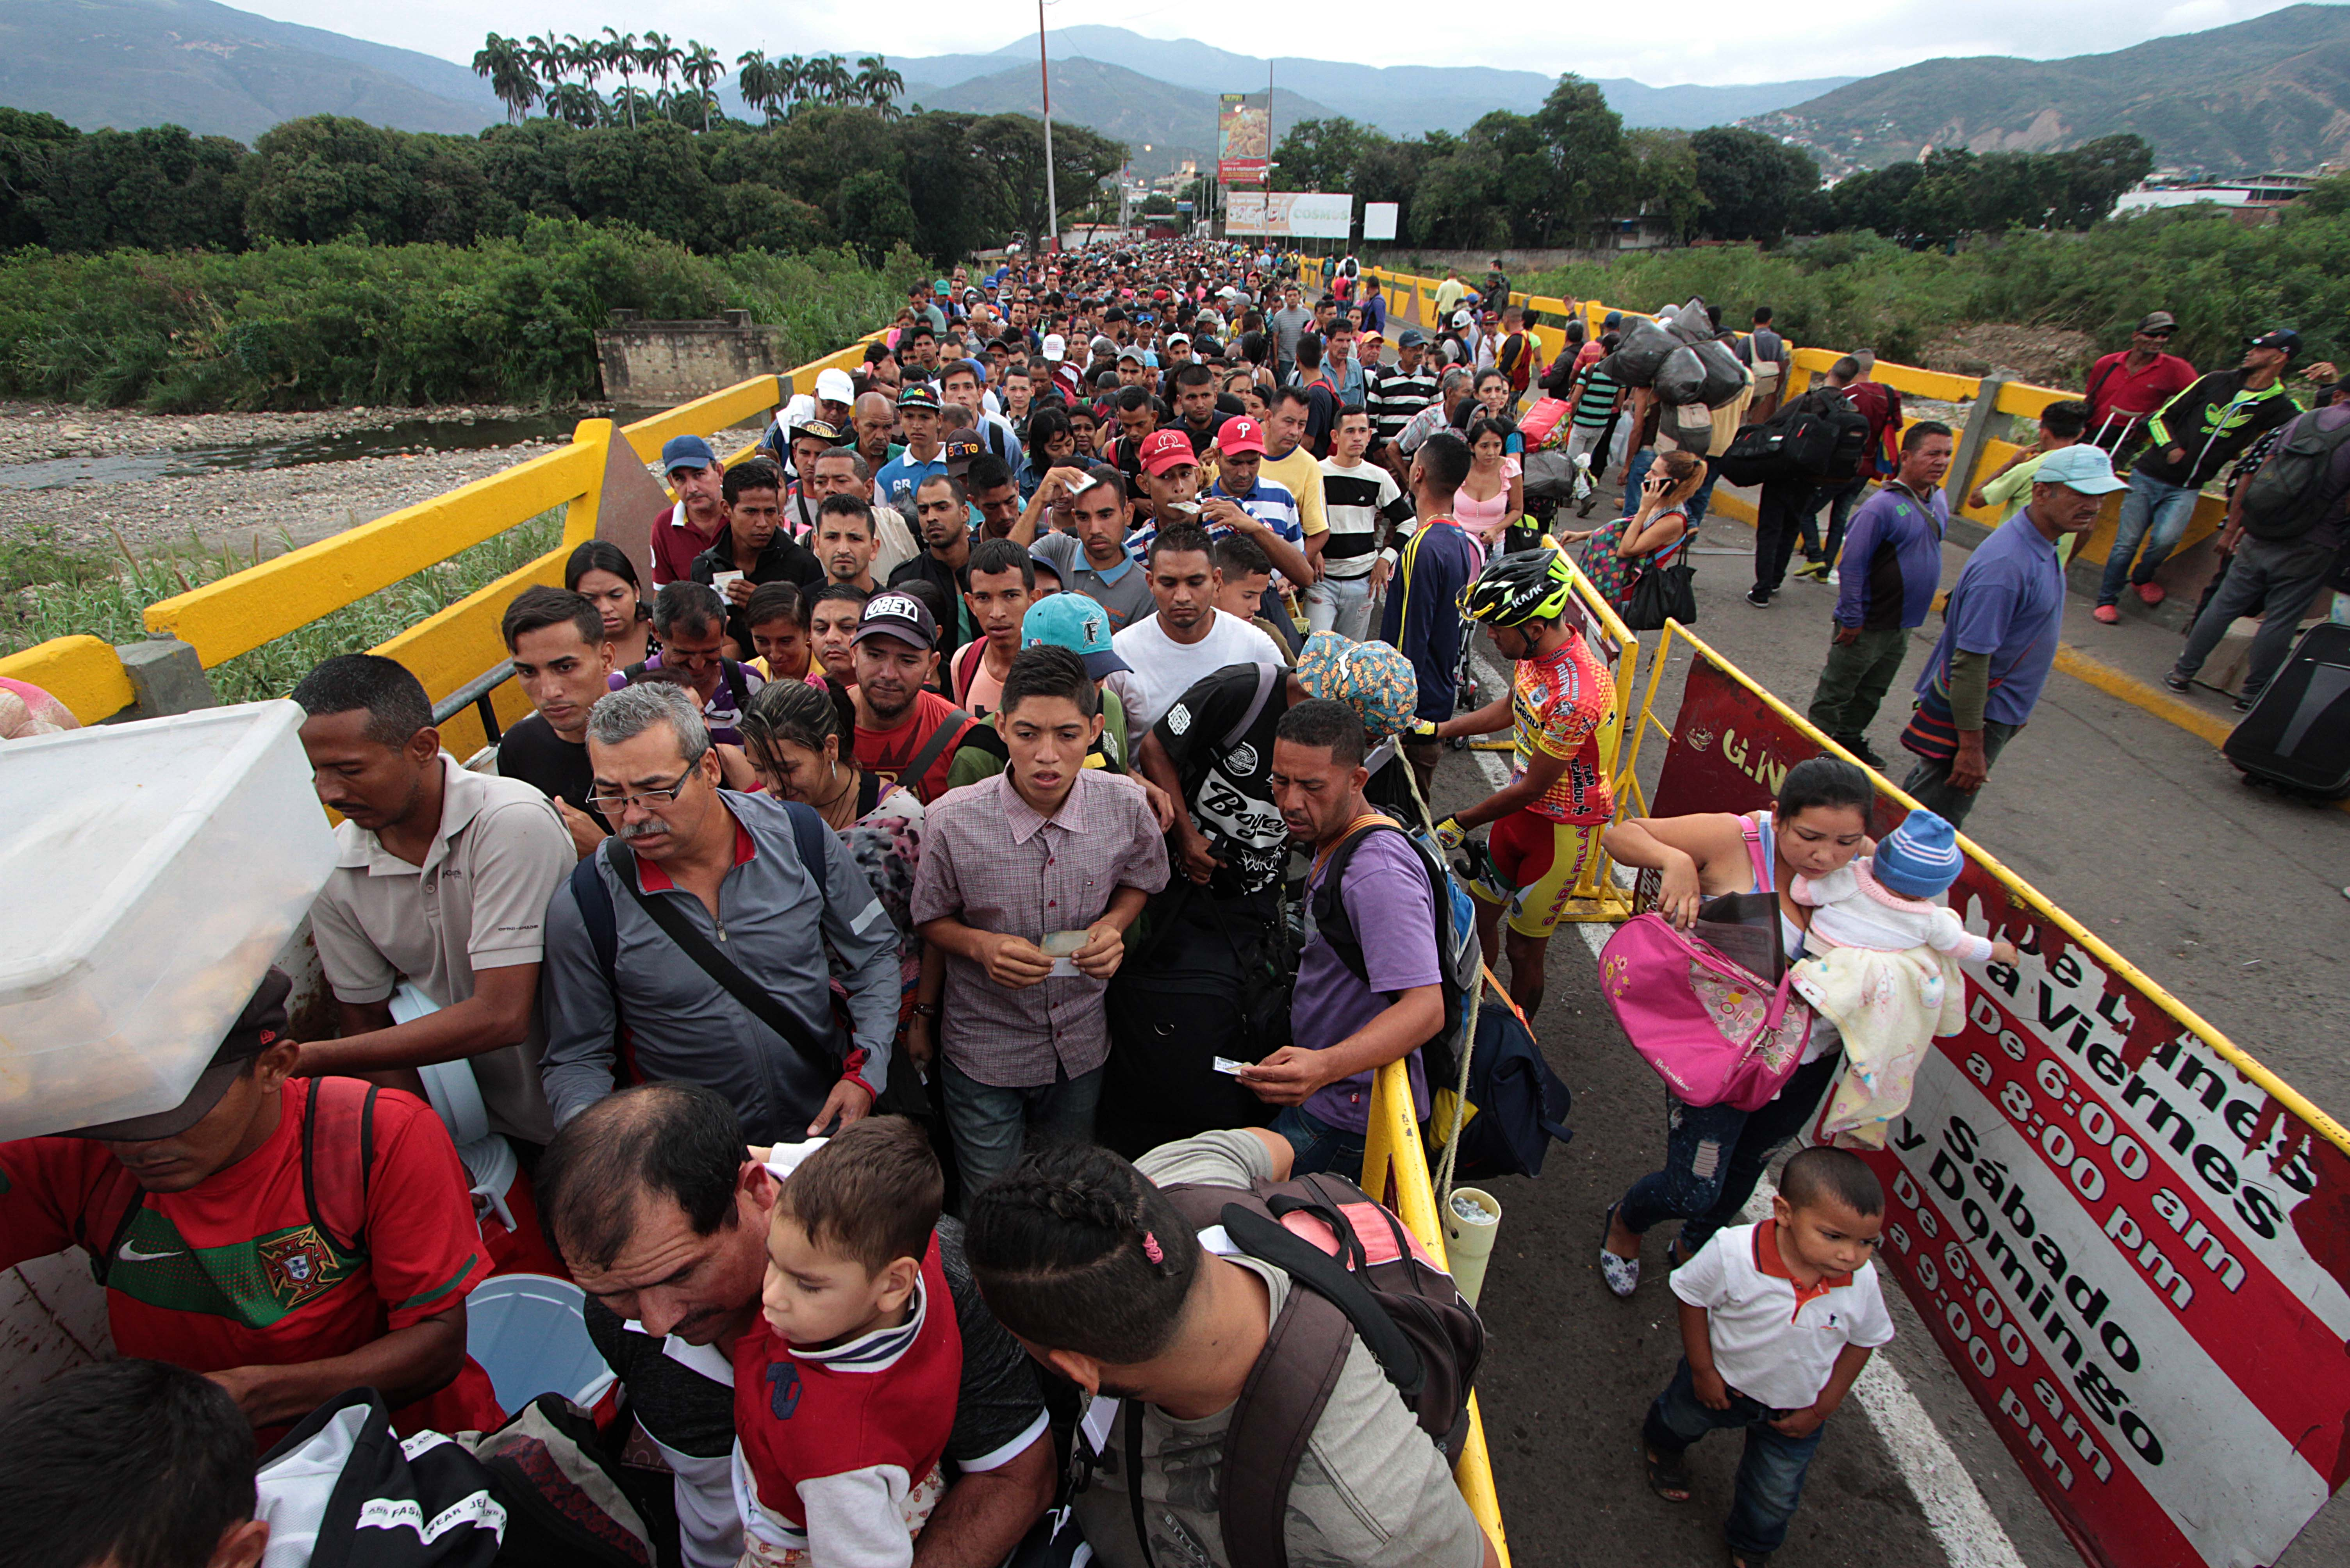 Shocking Images Show Thousands Of Venezuelans Fleeing To Colombia